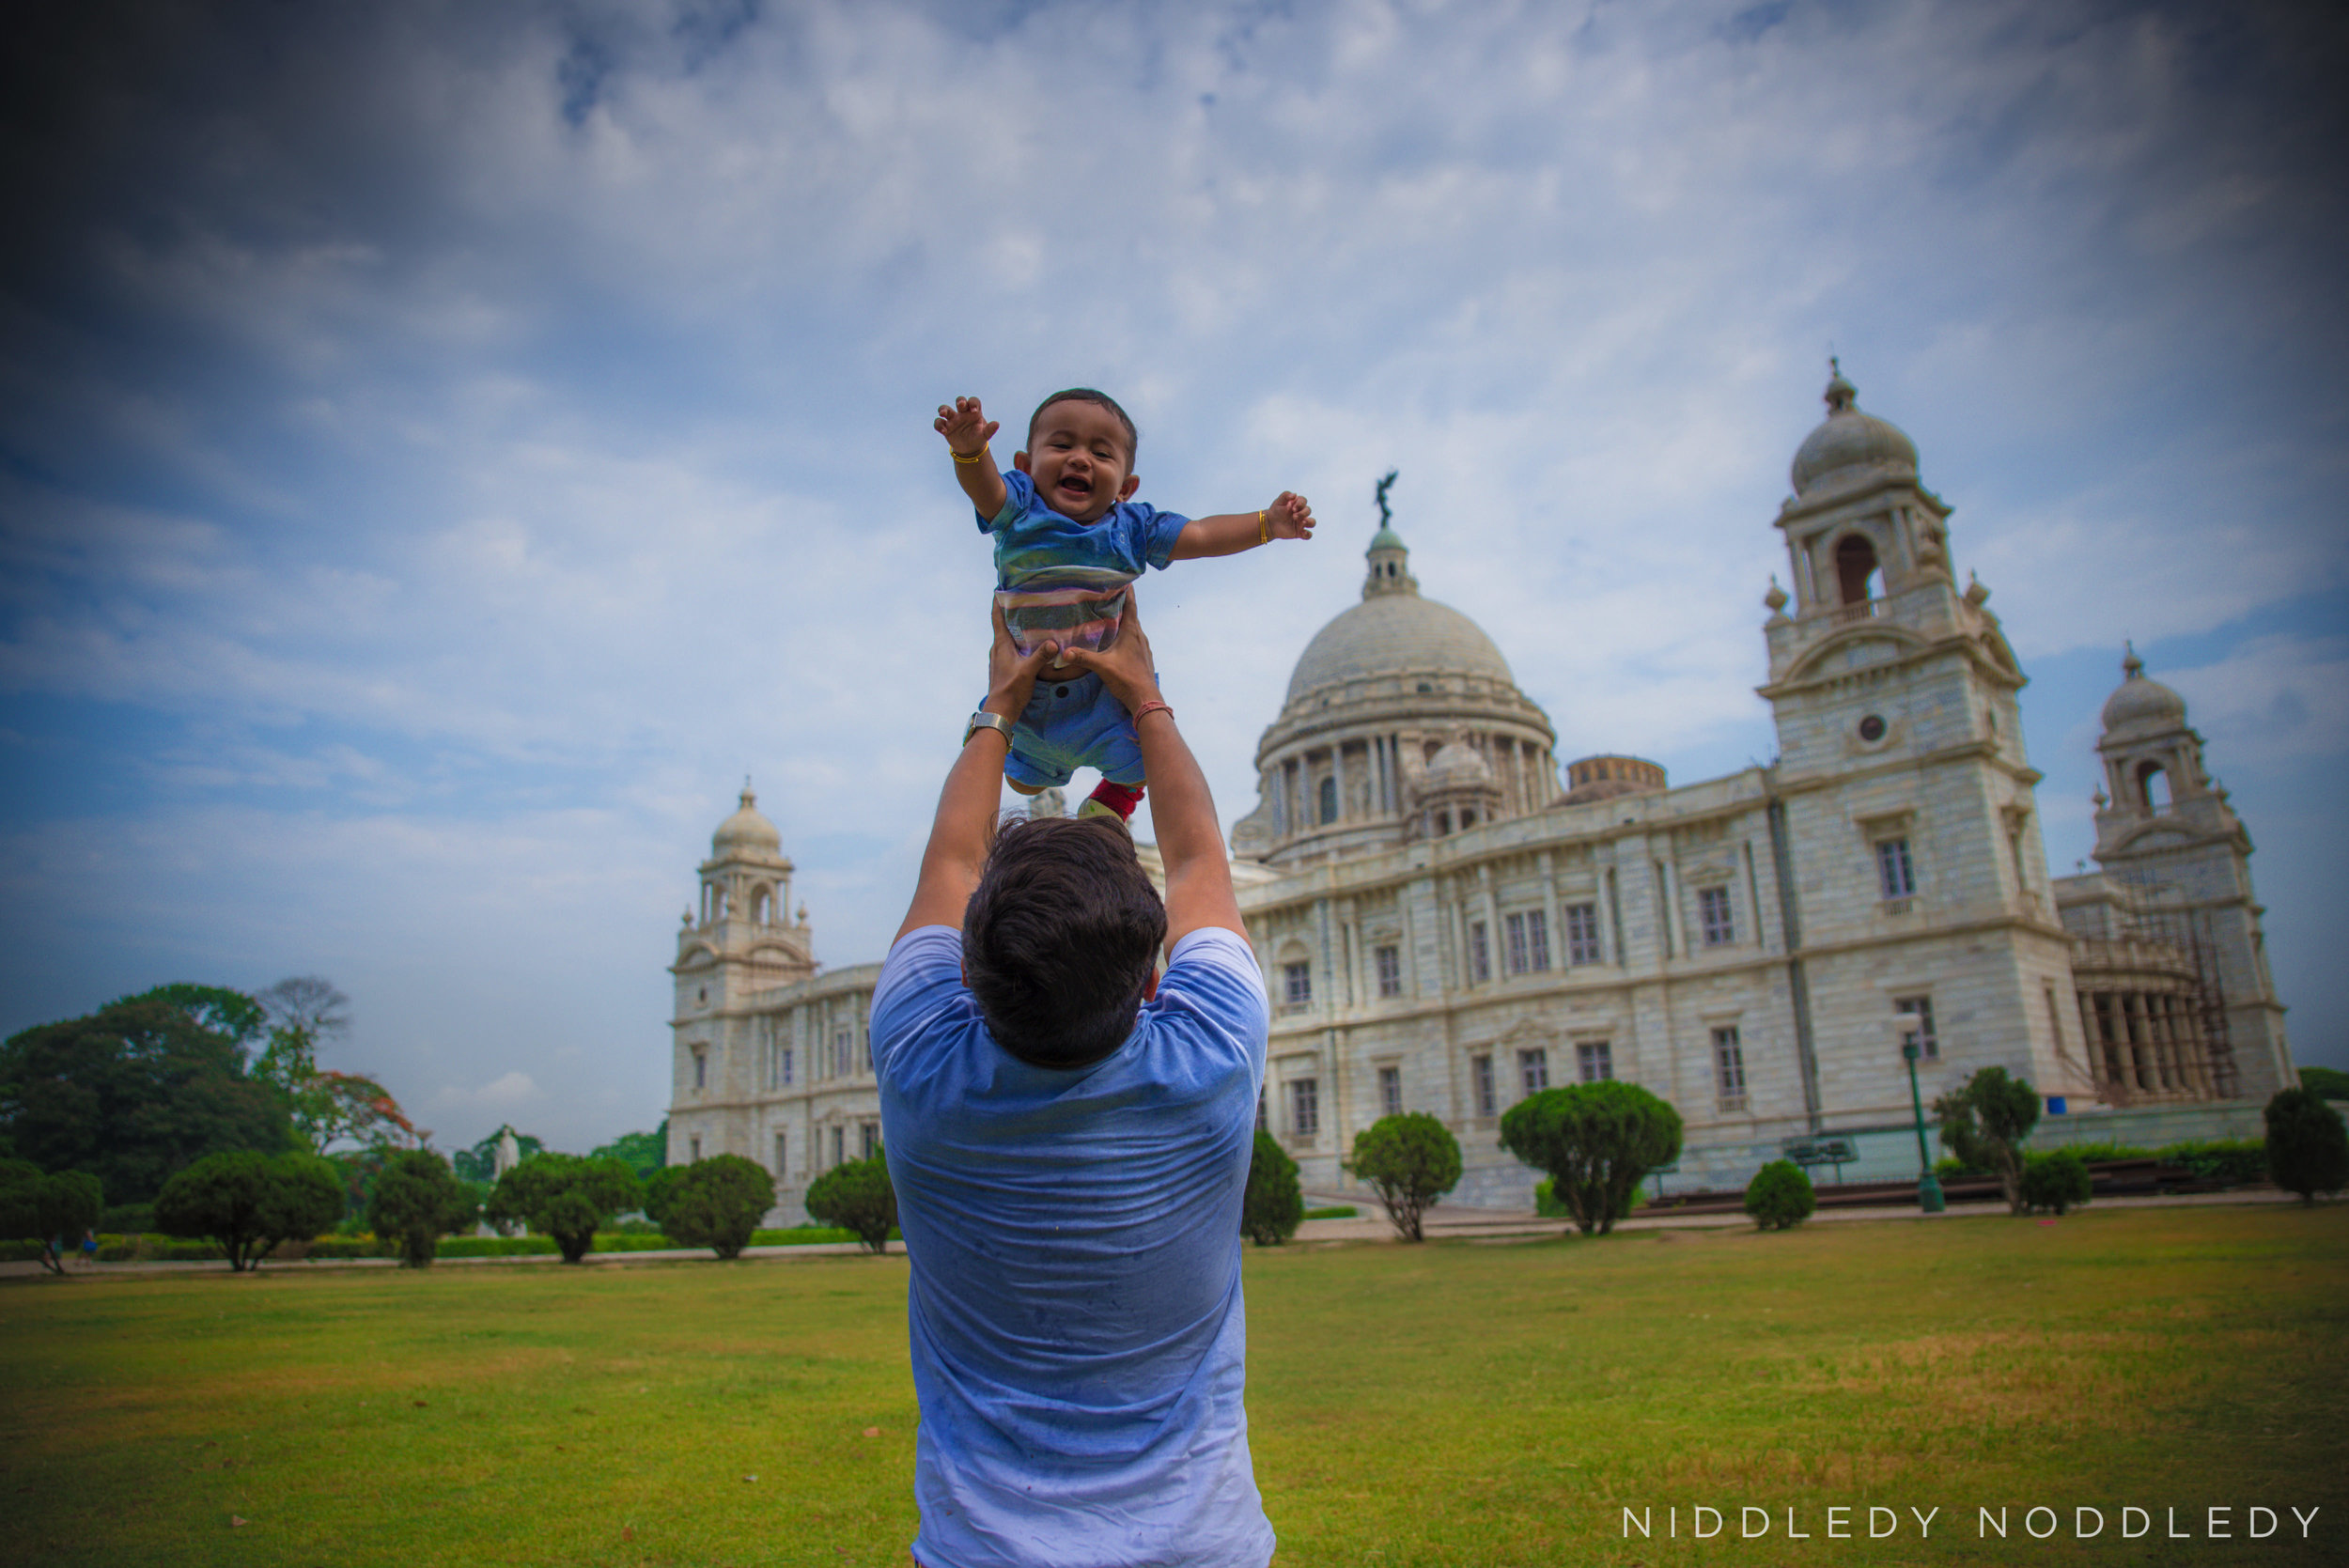 Maternity, Newborn and Children Photoshoots ❤ NiddledyNoddledy.com ~ Bellies and Babies Photography, Calcutta - 93.jpg